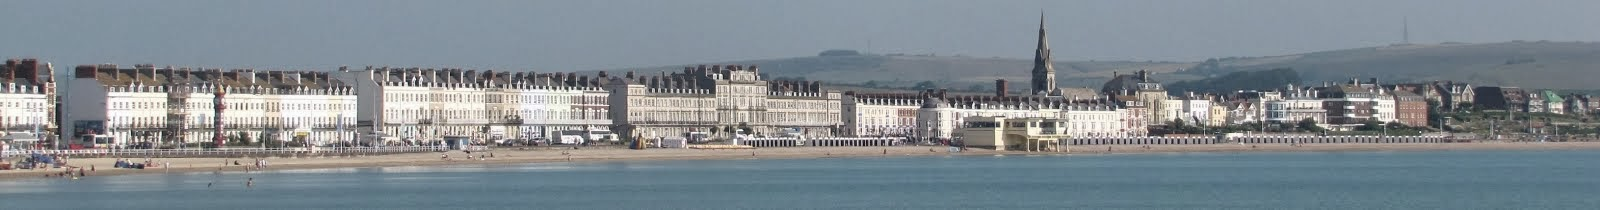 Whats On In Weymouth 2014 Pubs Clubs Restaurants Hotels Events Dorset